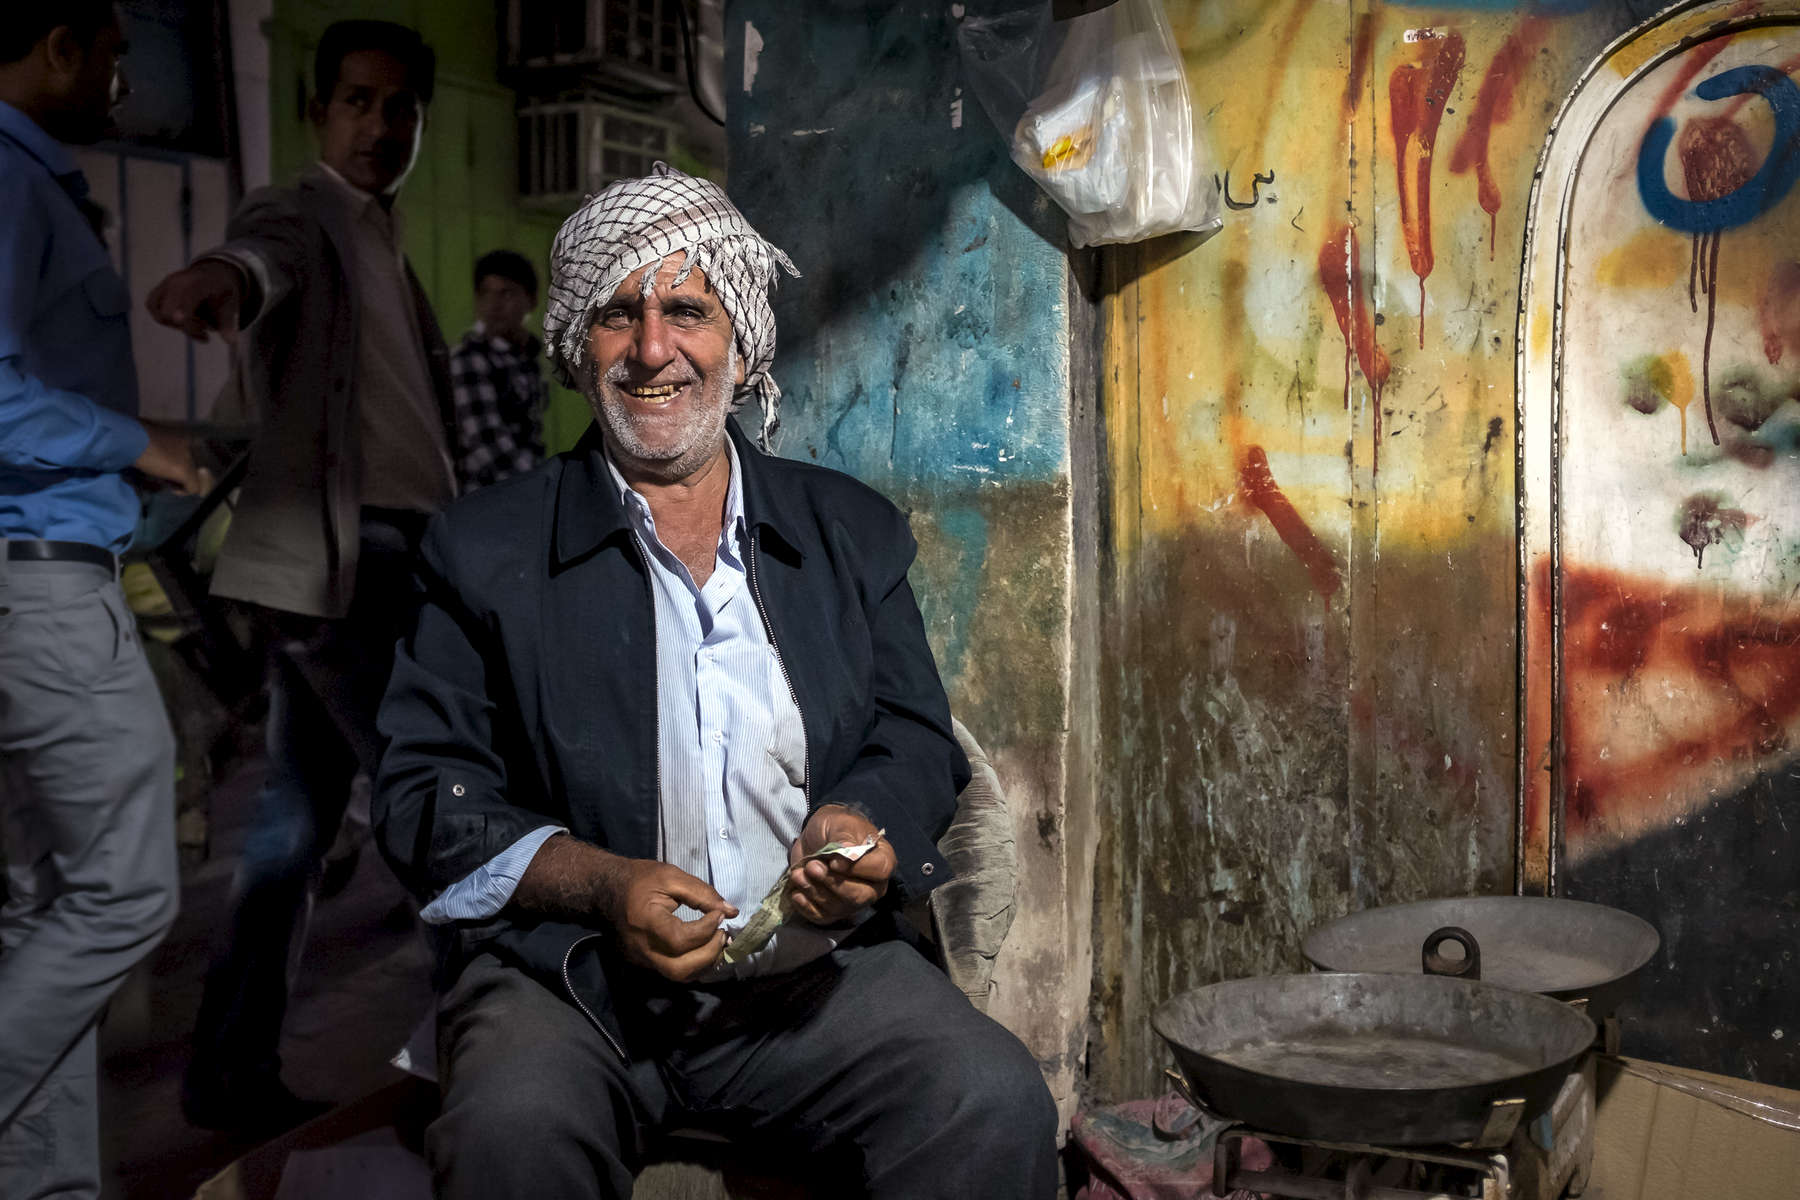 A fruit salesman in Bazar e Zytoon, Bandar Abbas.  His large smile may have been at the ease a hungry photographer was overcharged for a bunch of bannanas.